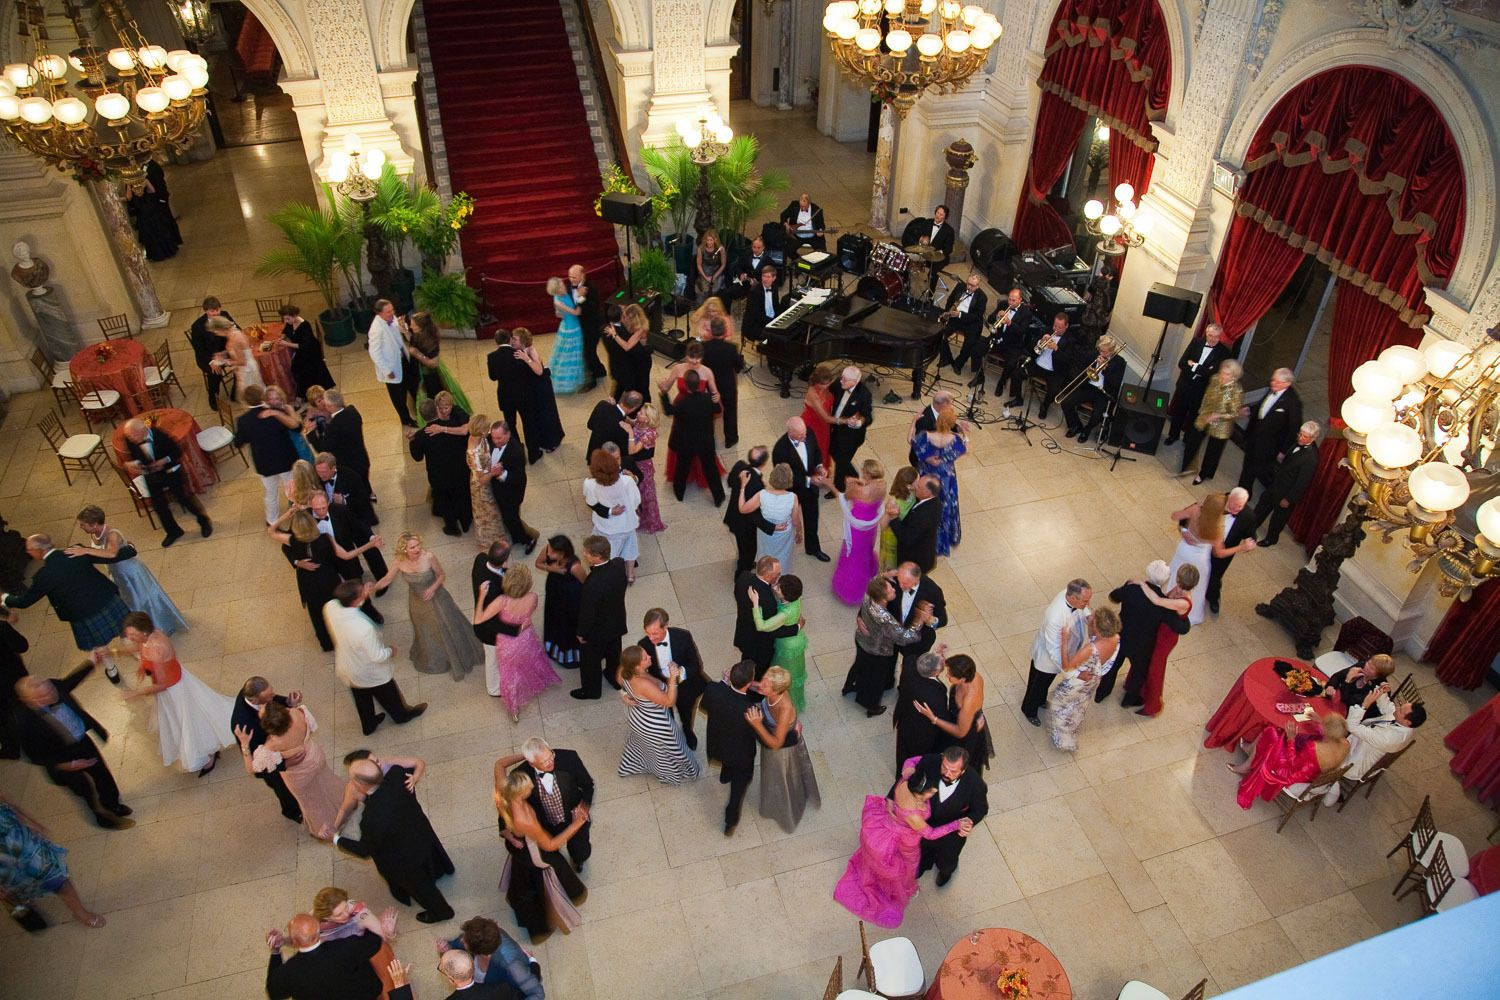 Guests step back in time dancing in the Great Hall at The Breakers